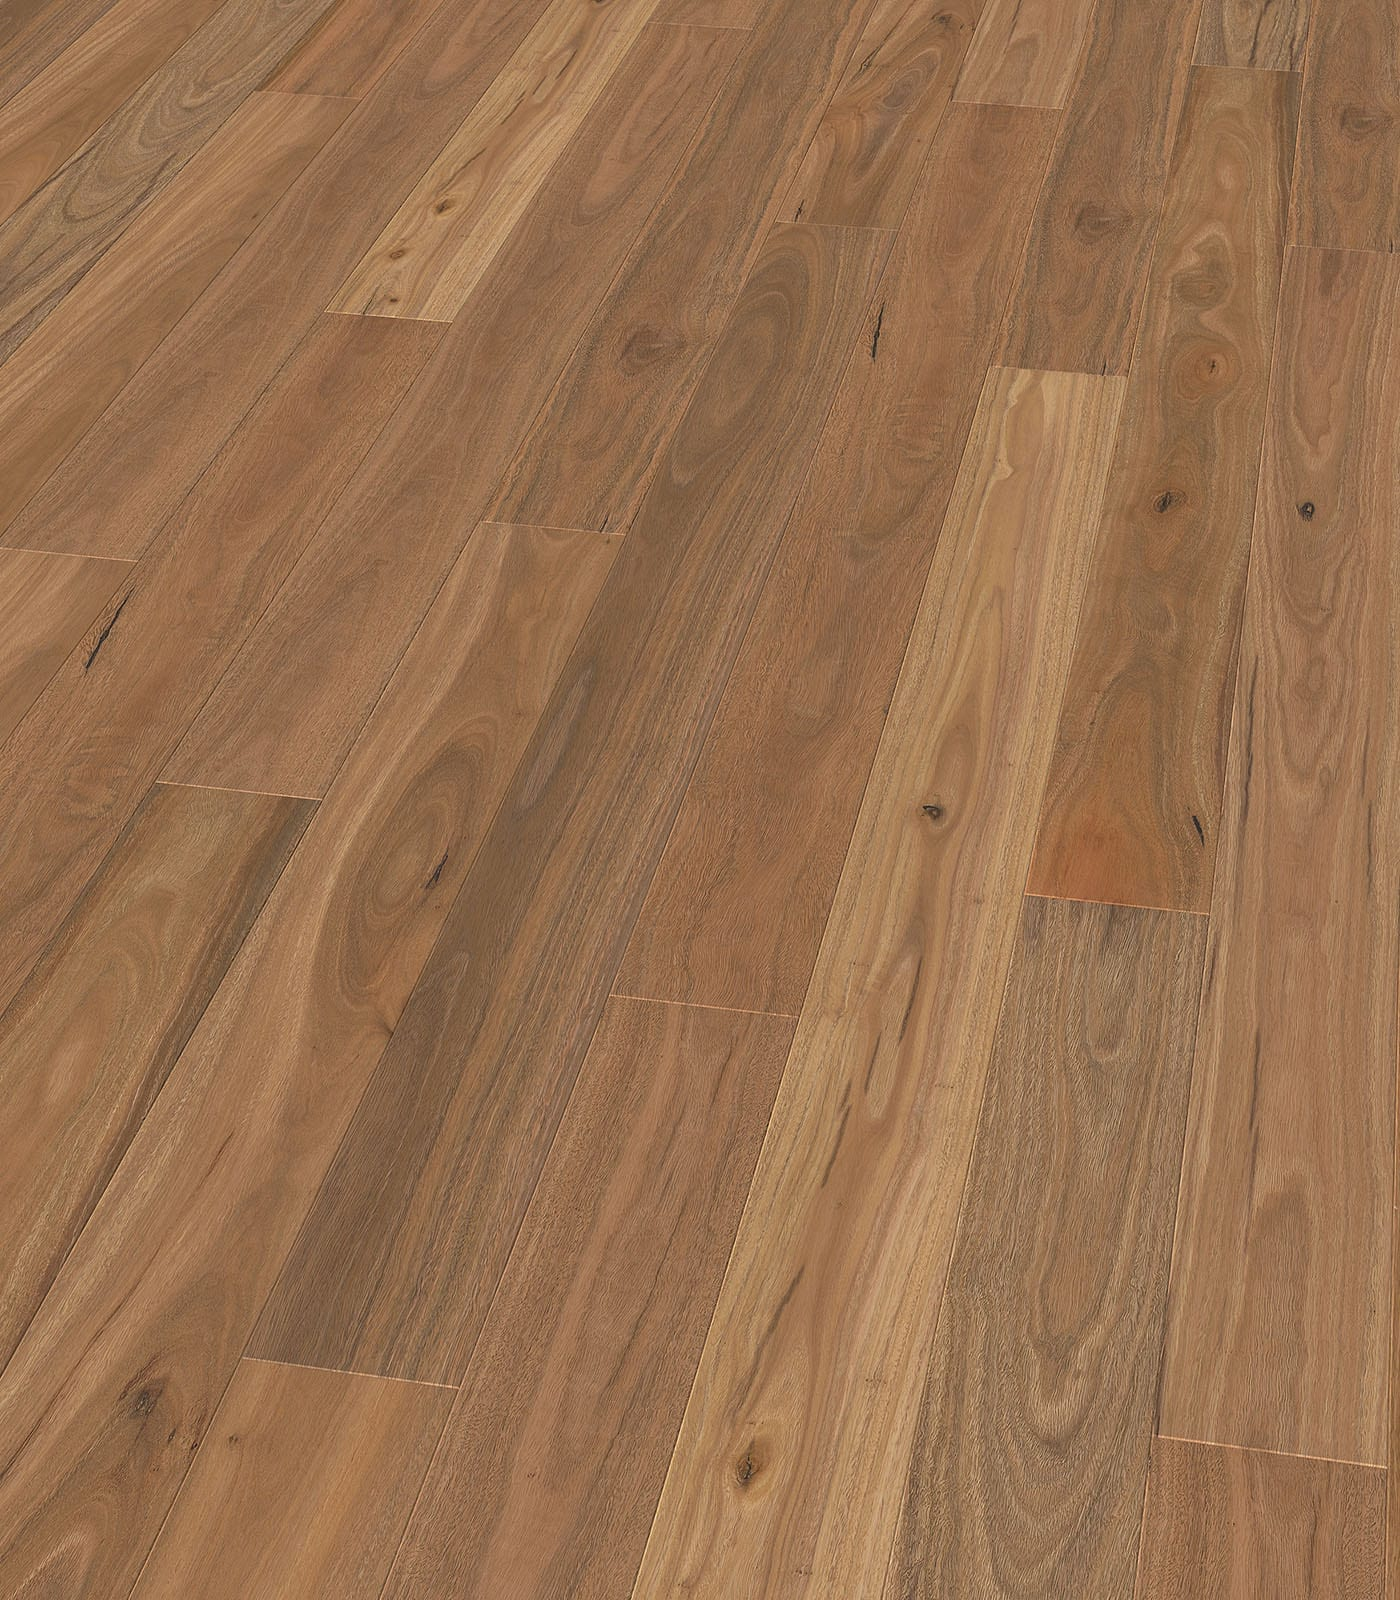 Spotted Gum-engineered floors-Origins collection-angle